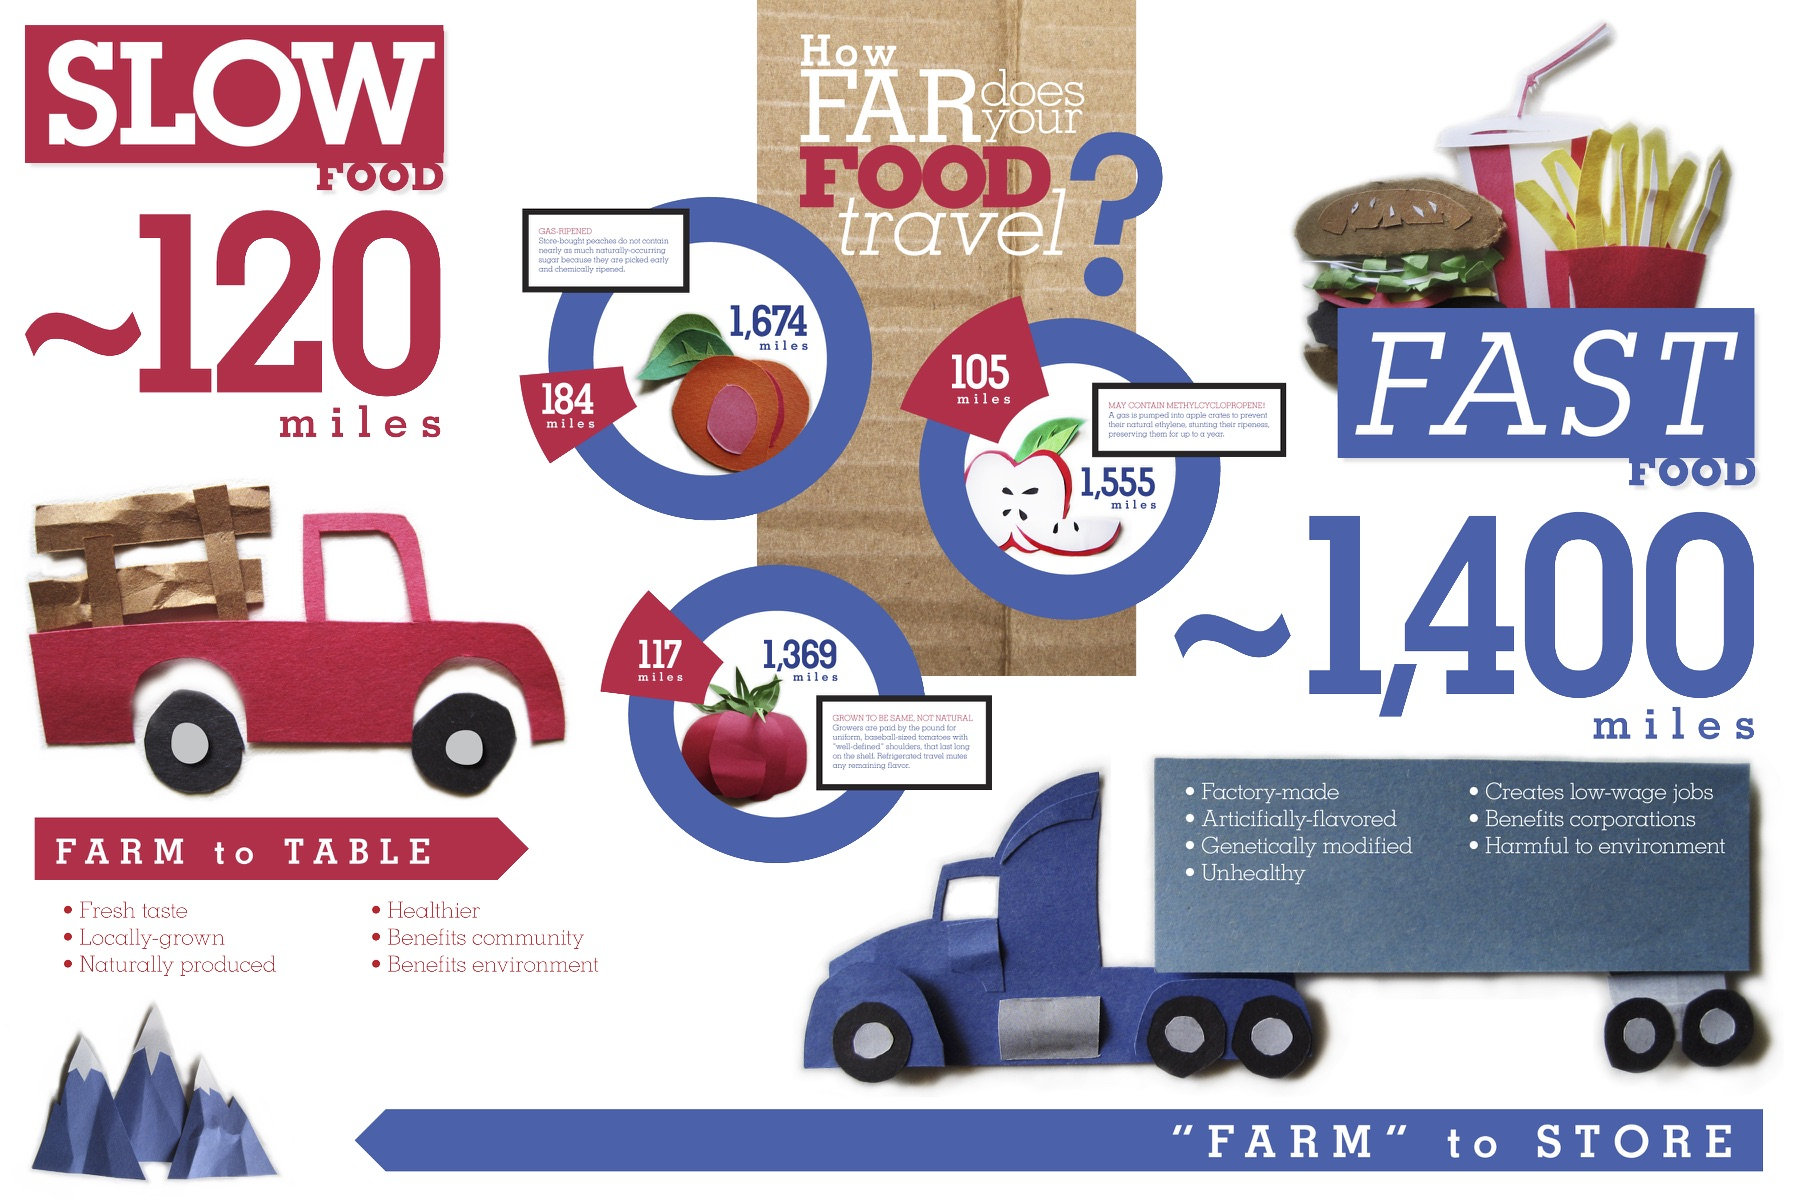 Slow Food Vs. Fast Food